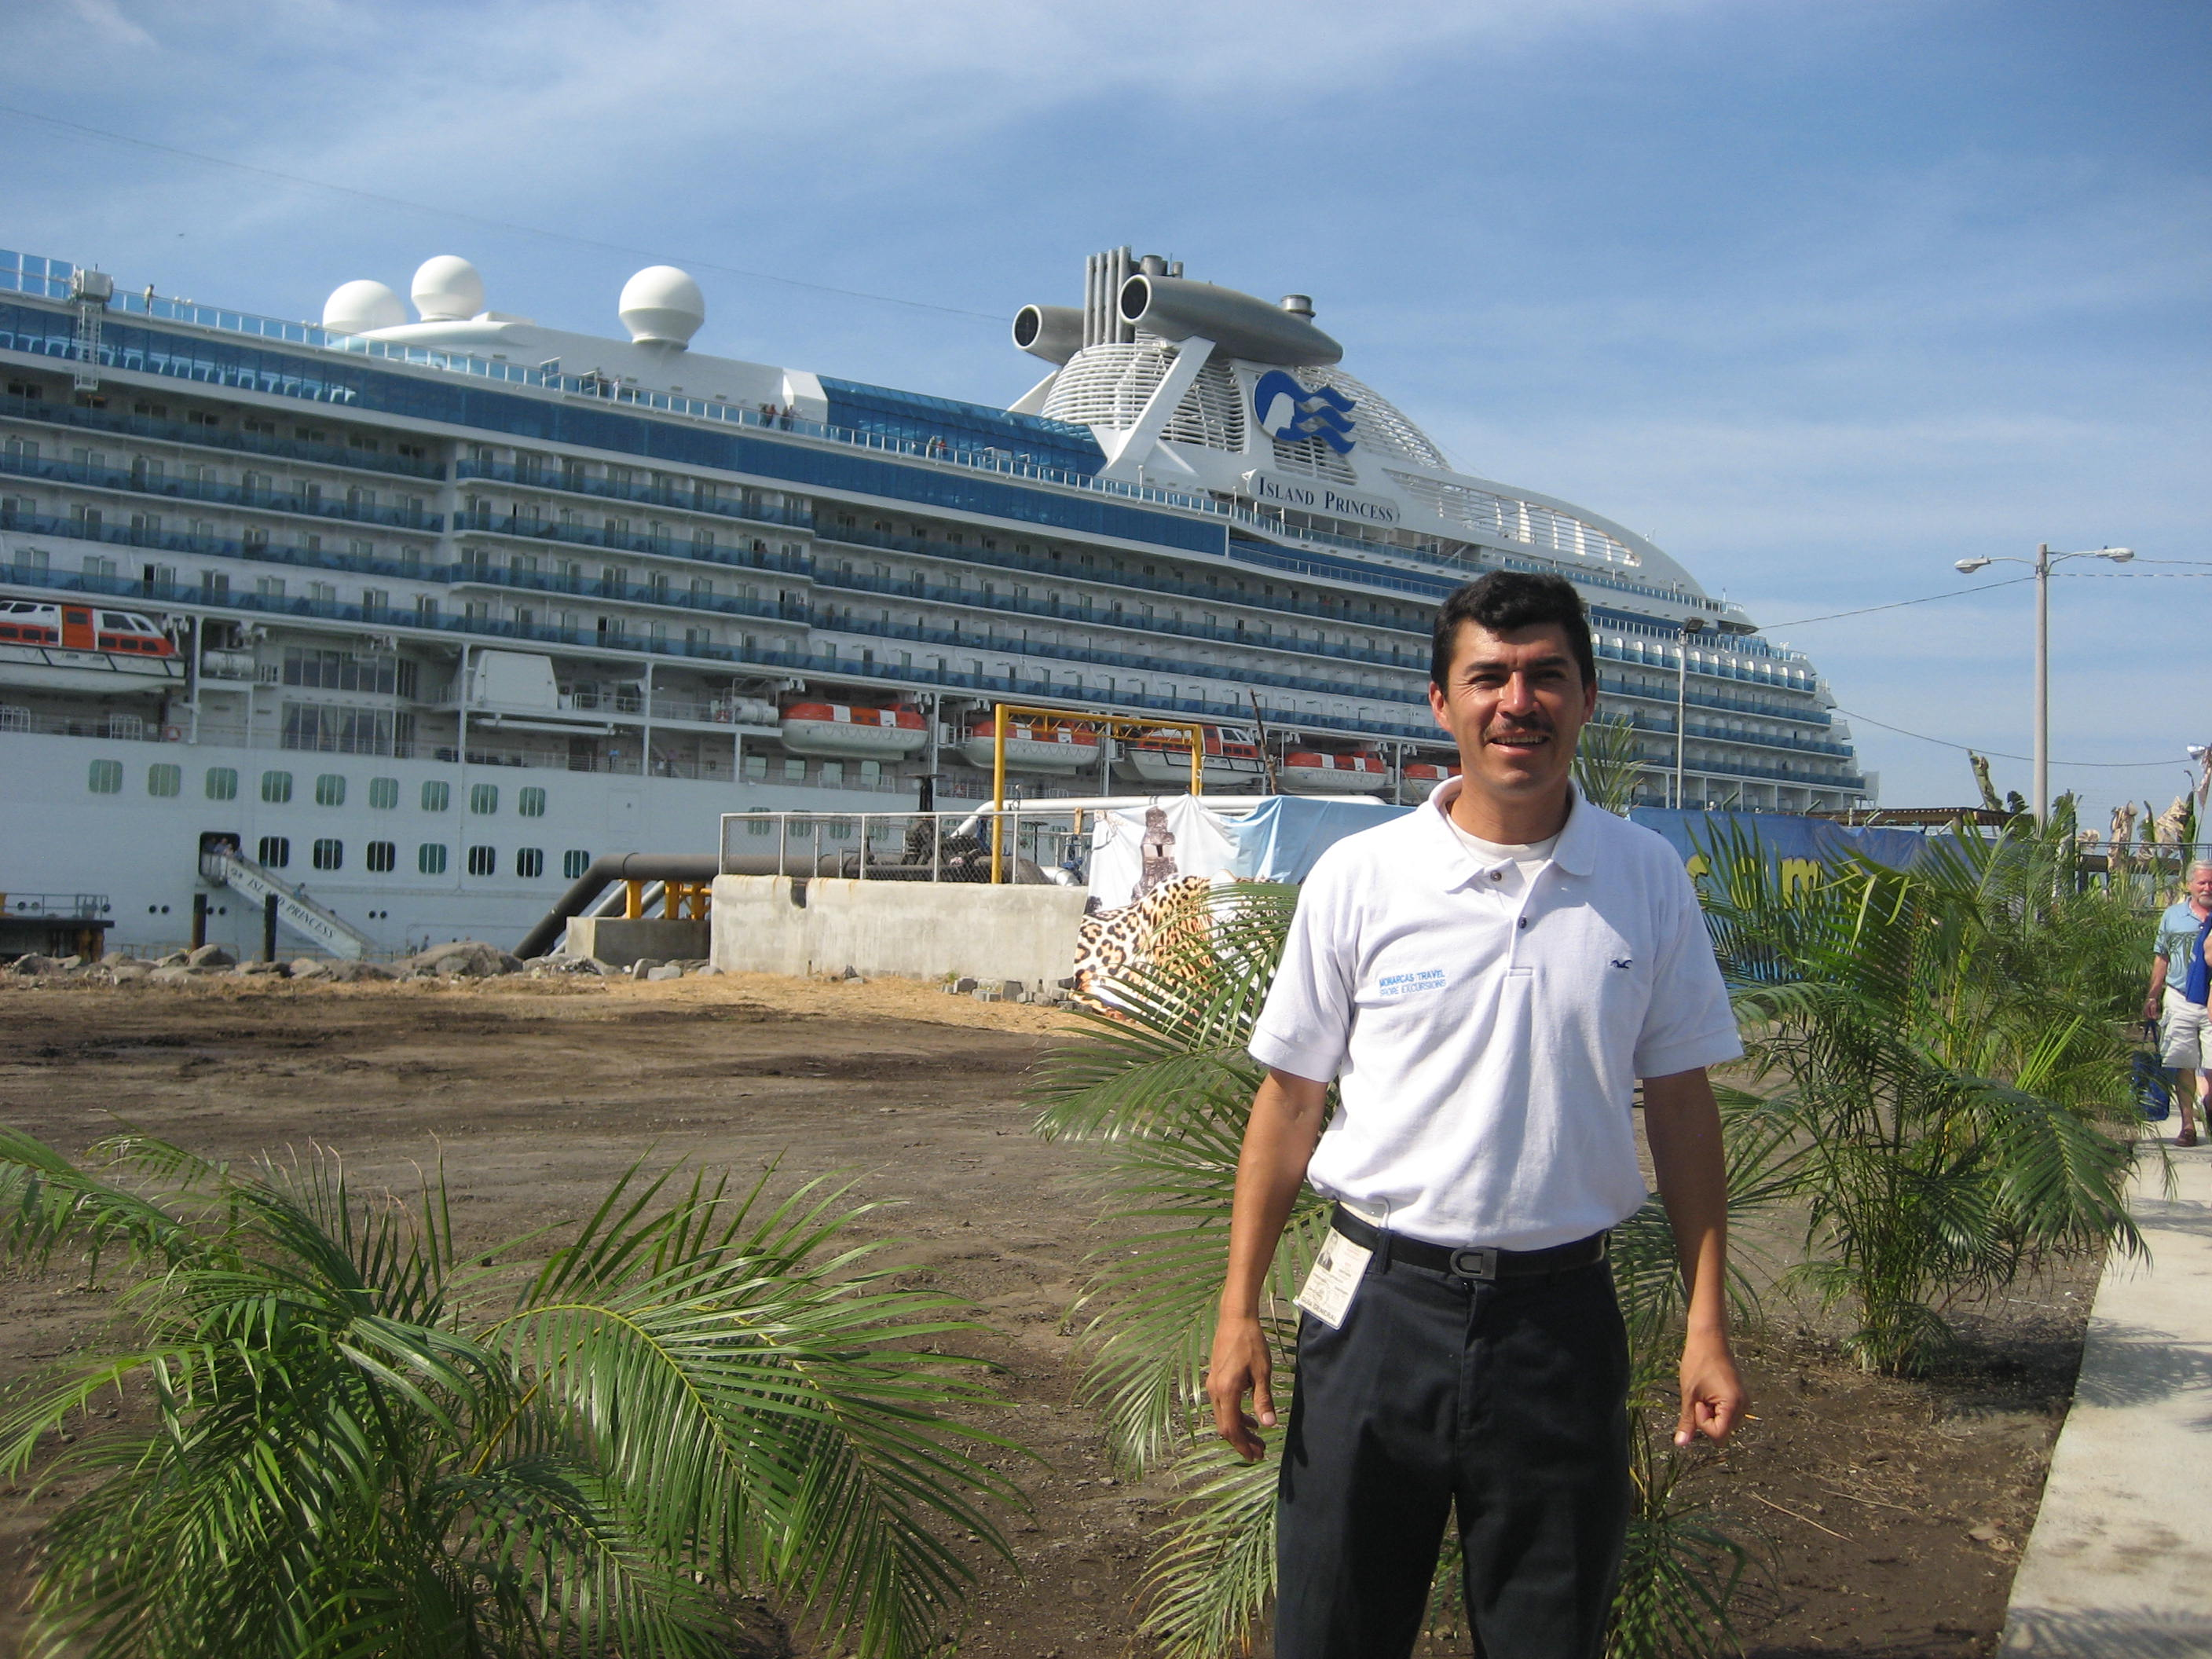 tour guide and cruise